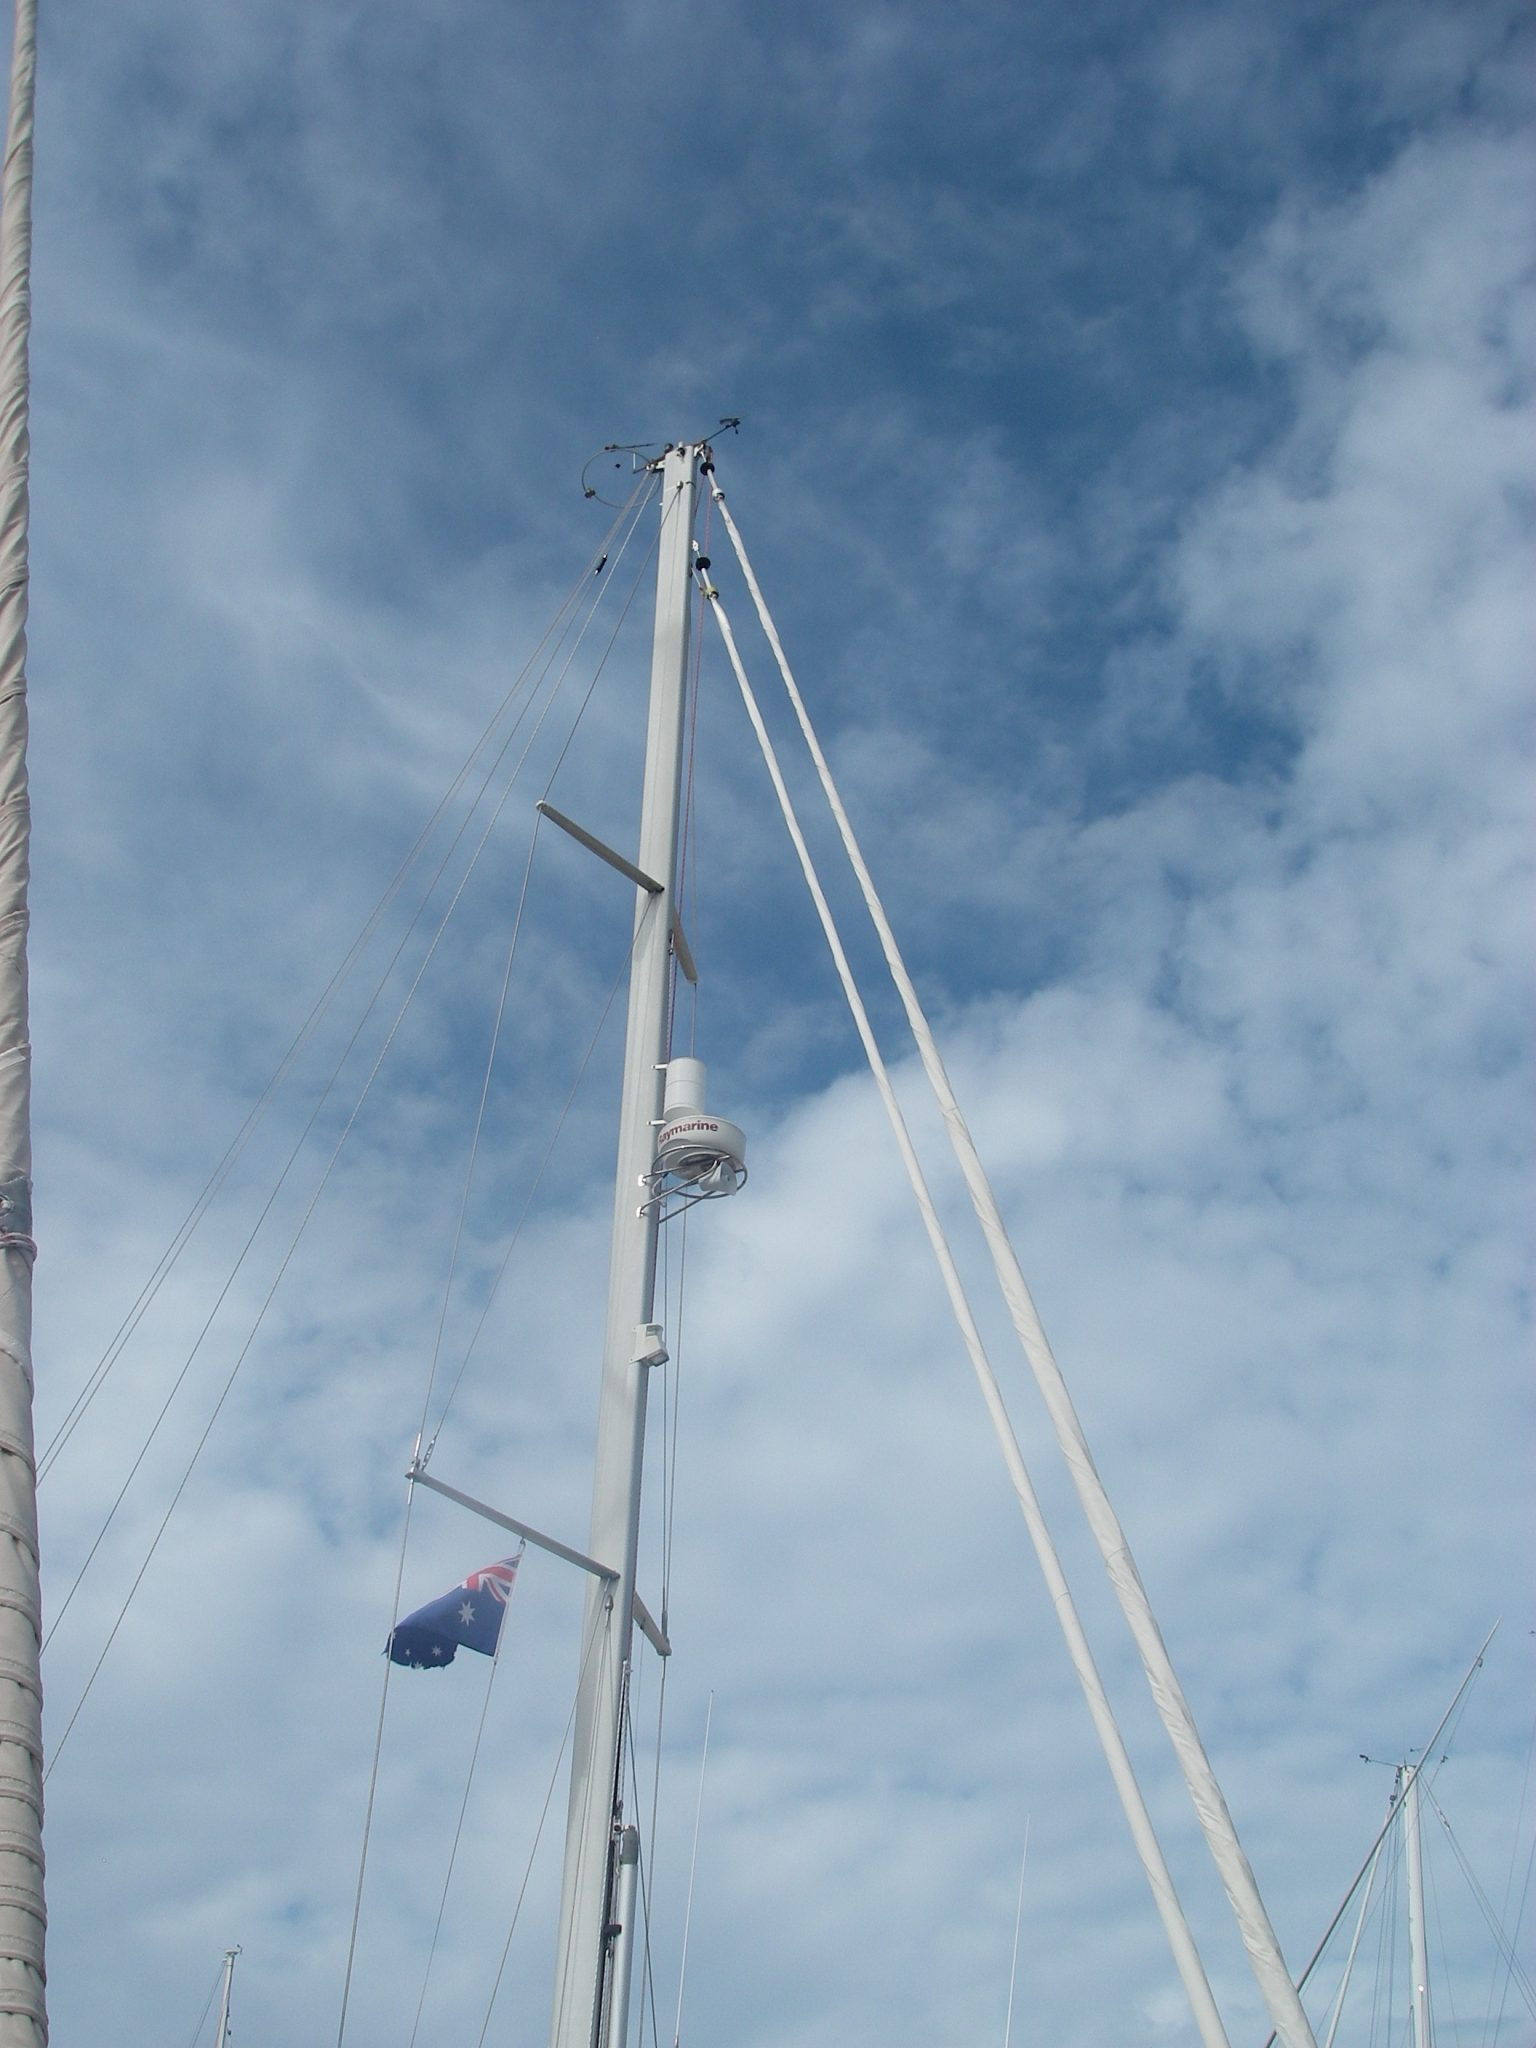 20. Joyful needed a new Australian courtesy flag because half of it had been shredded as it hit Joyful's standing rigging when the wind blew hard